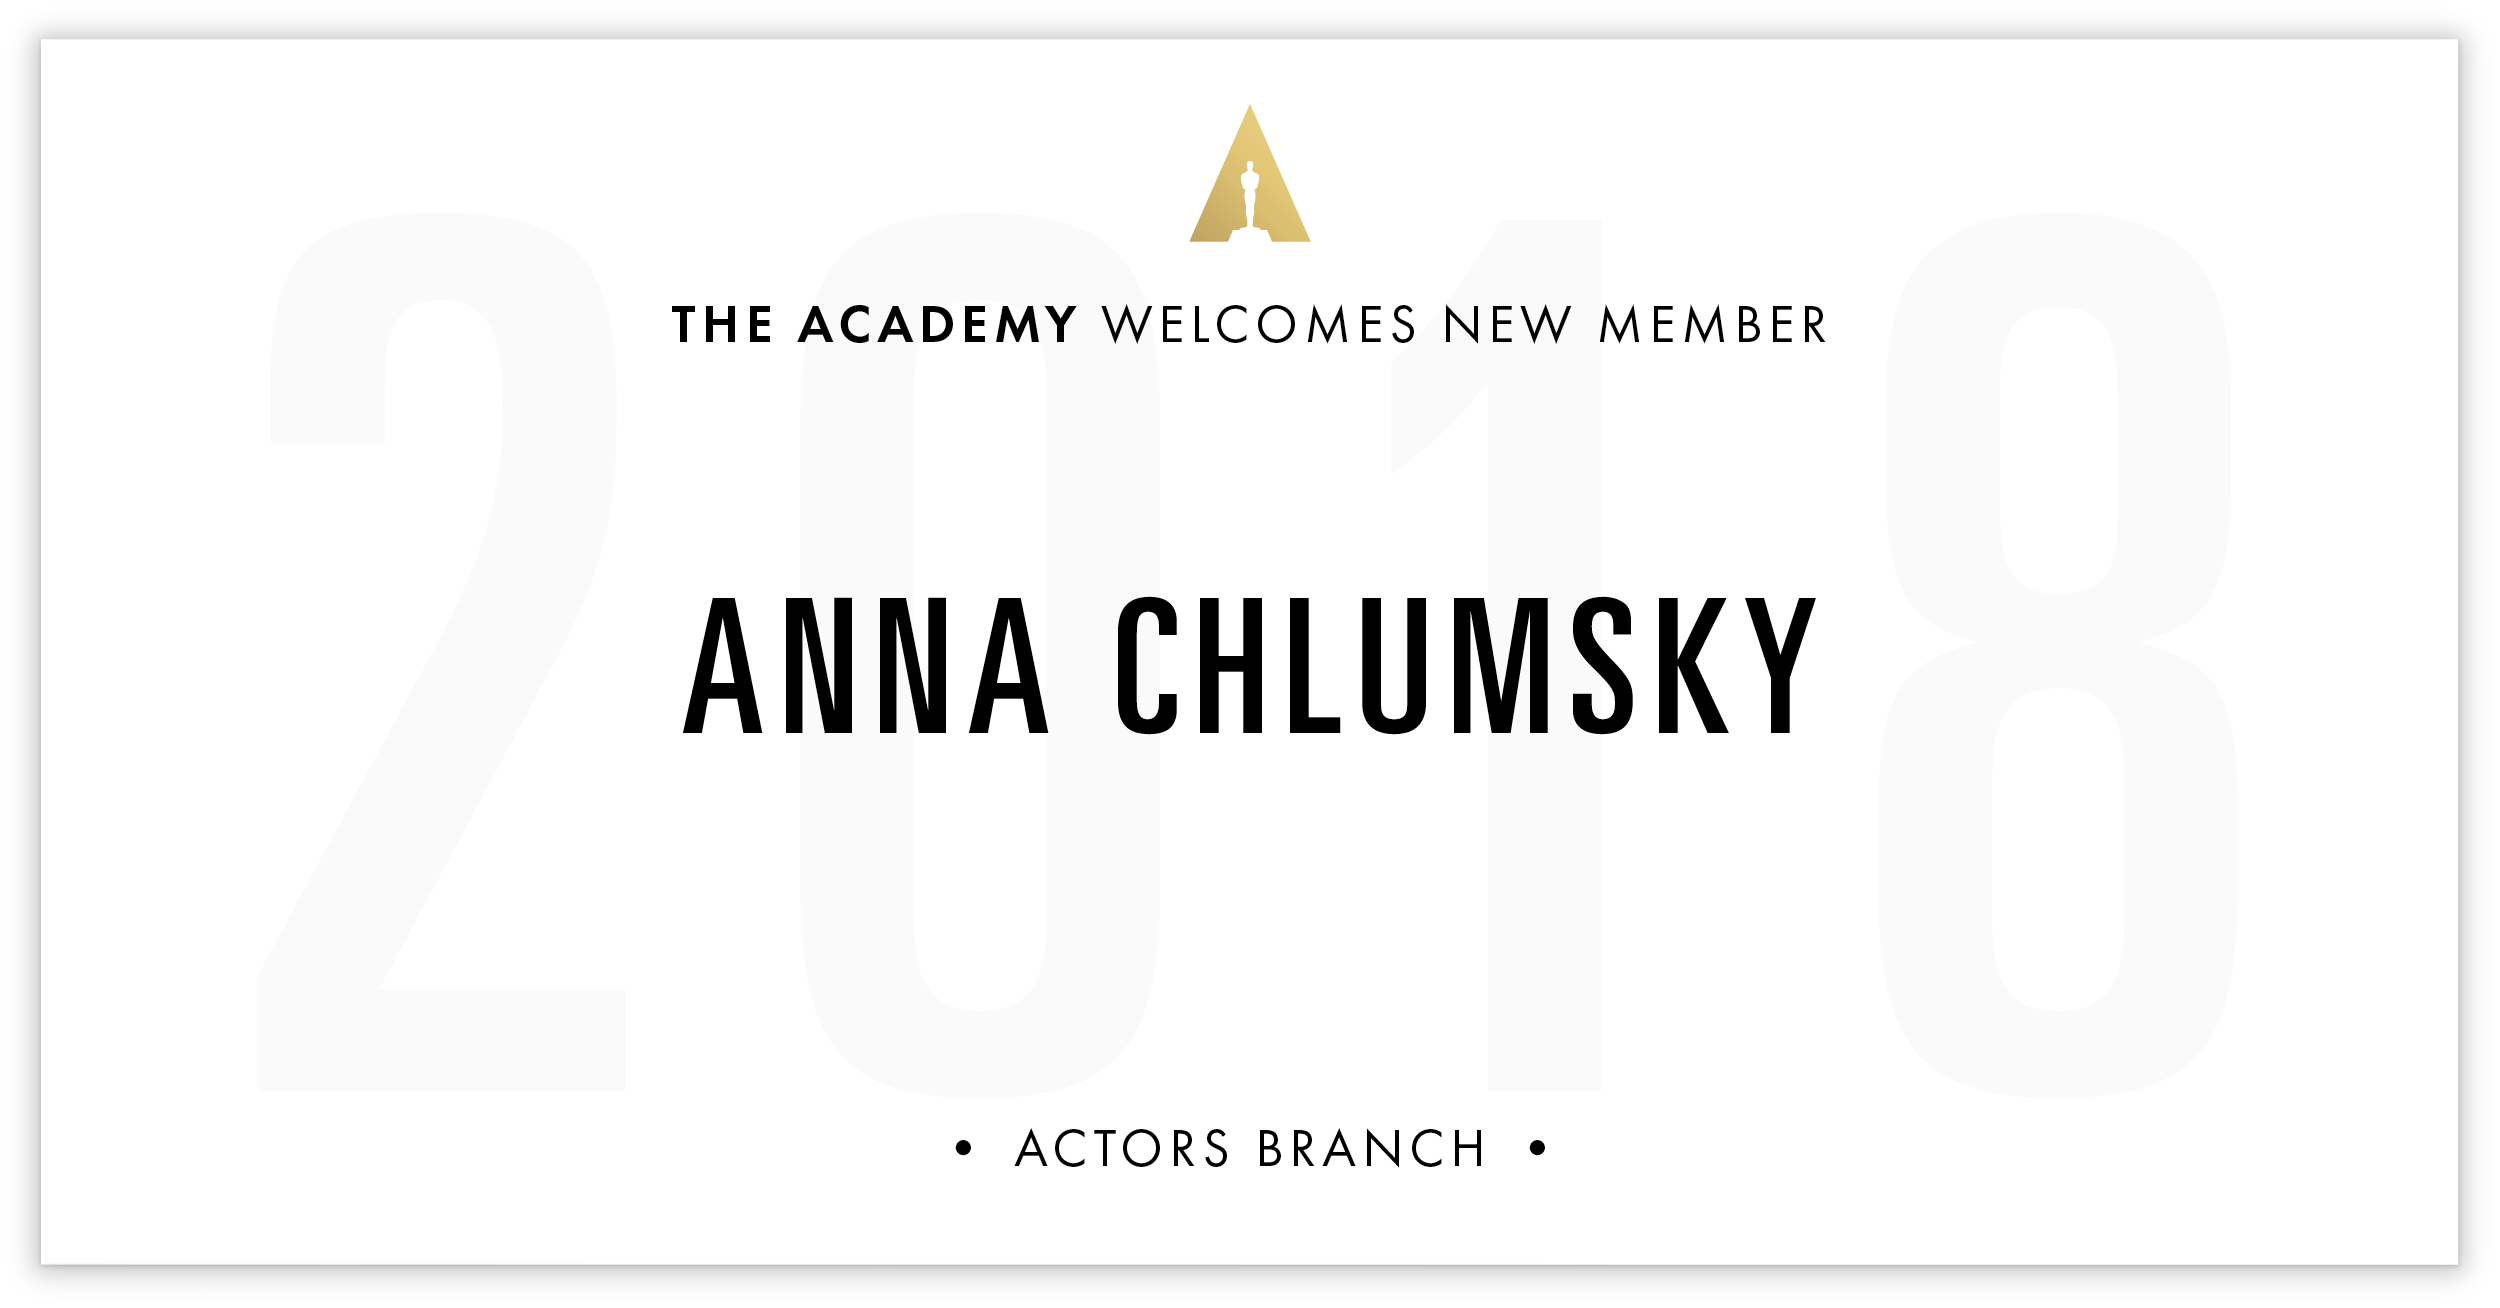 Anna Chlumsky is invited!